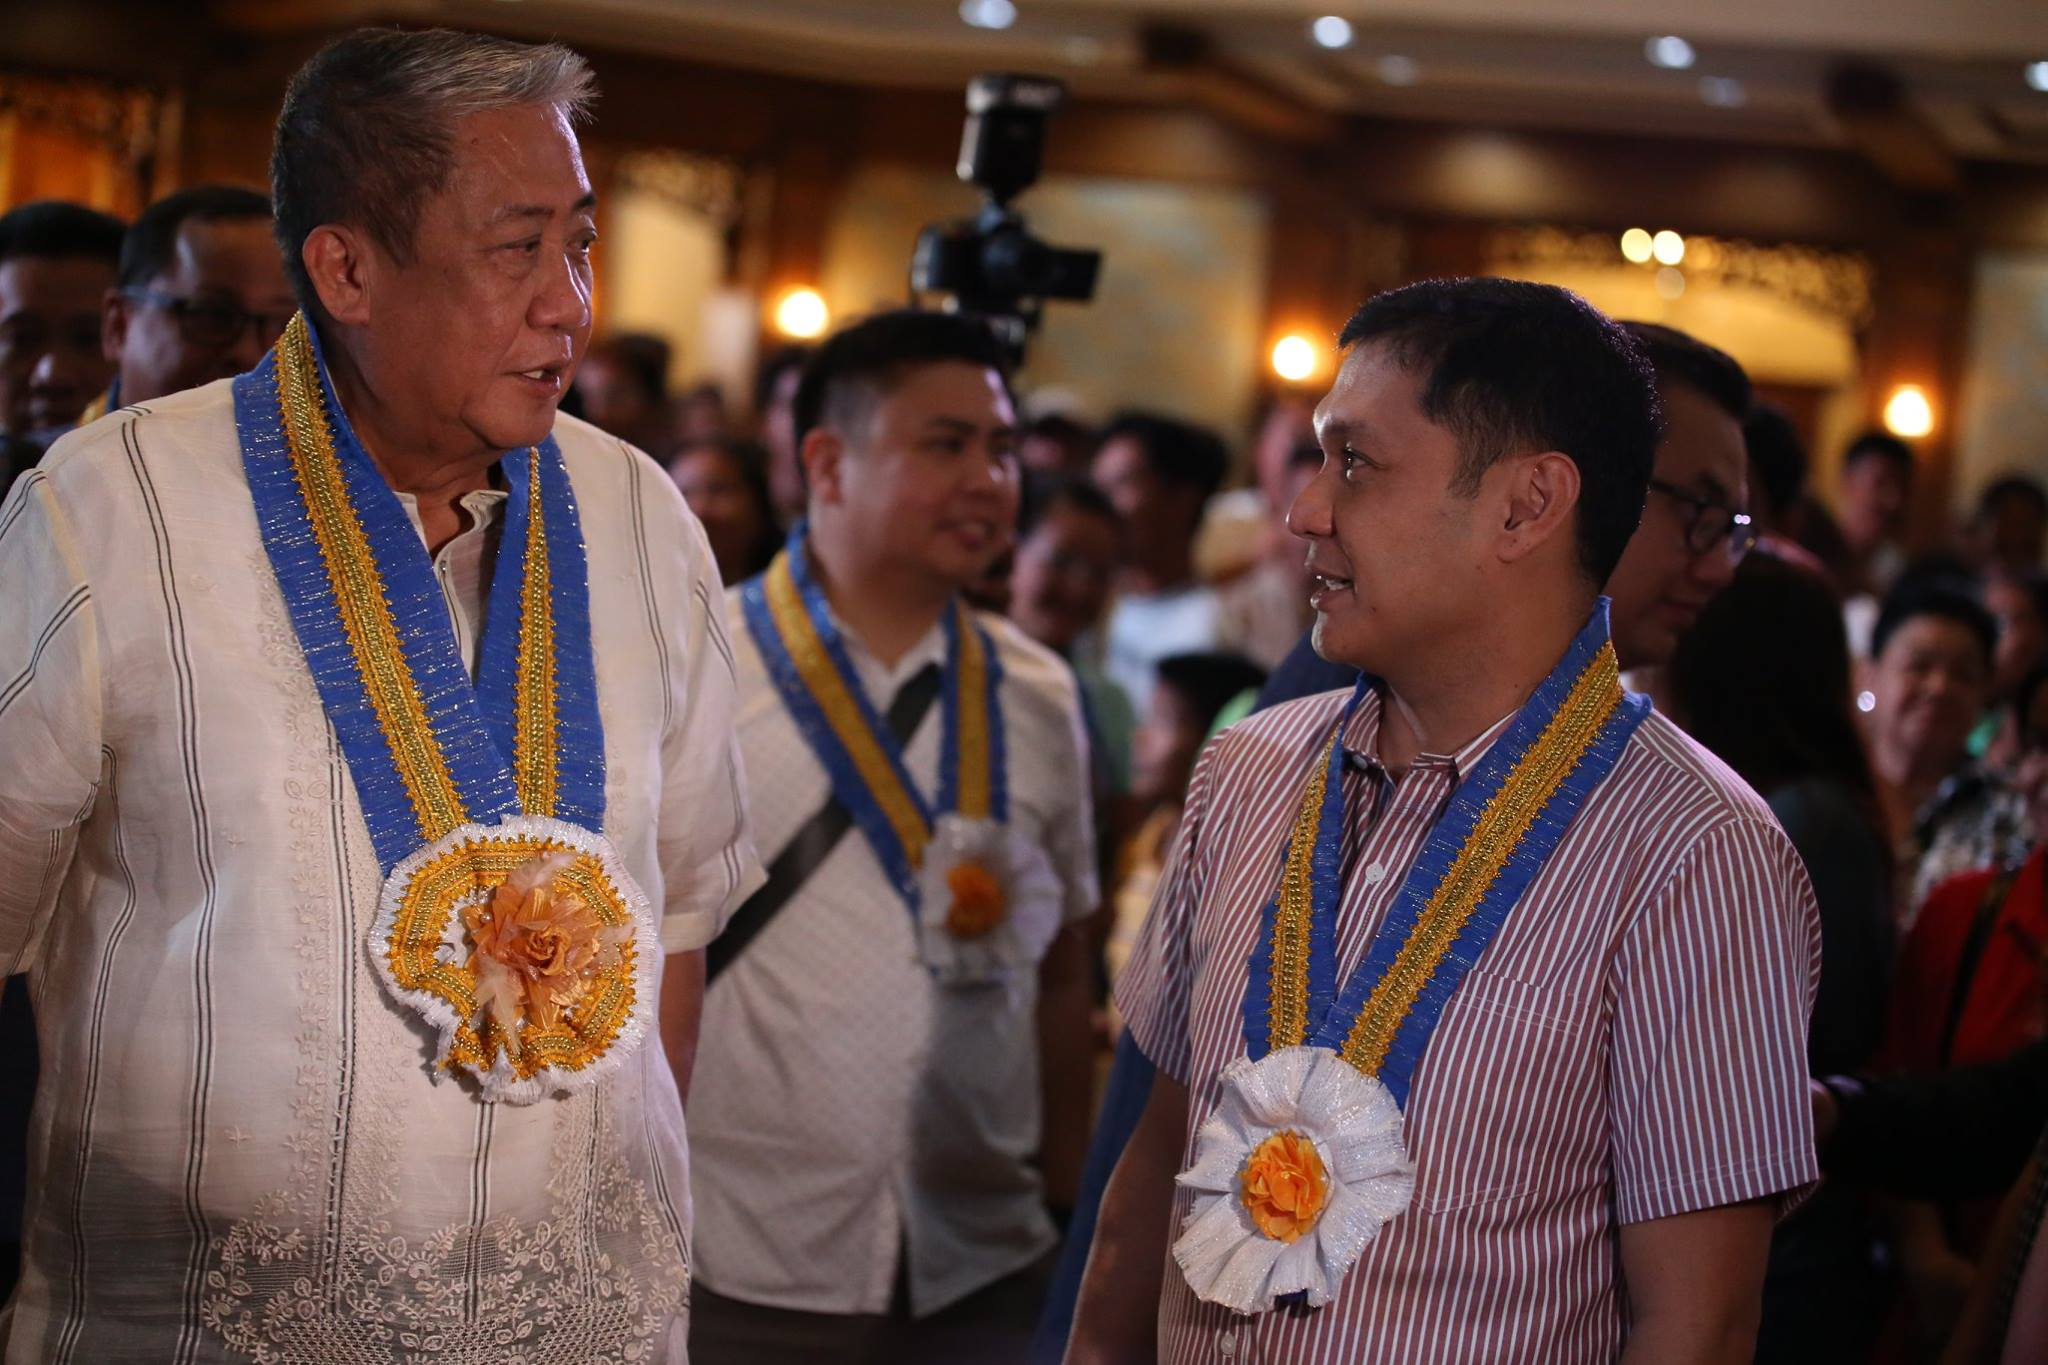 DOTr Sec. says Lingayen Airport will soon be developed for commercial operations